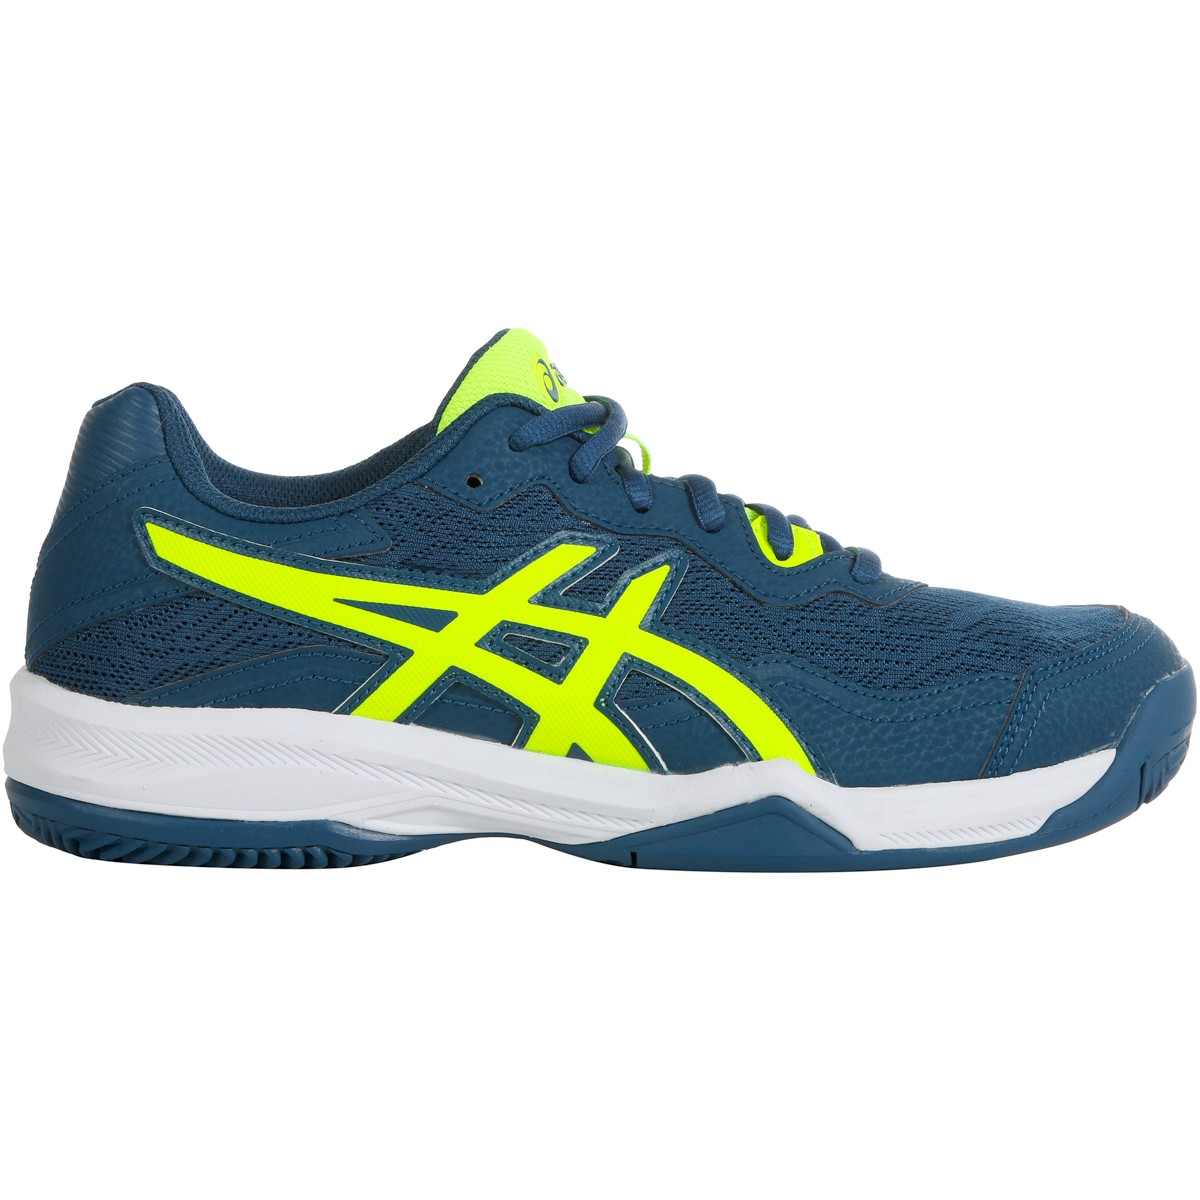 CHAUSSURES ASICS JUNIOR GEL PADEL PRO GS